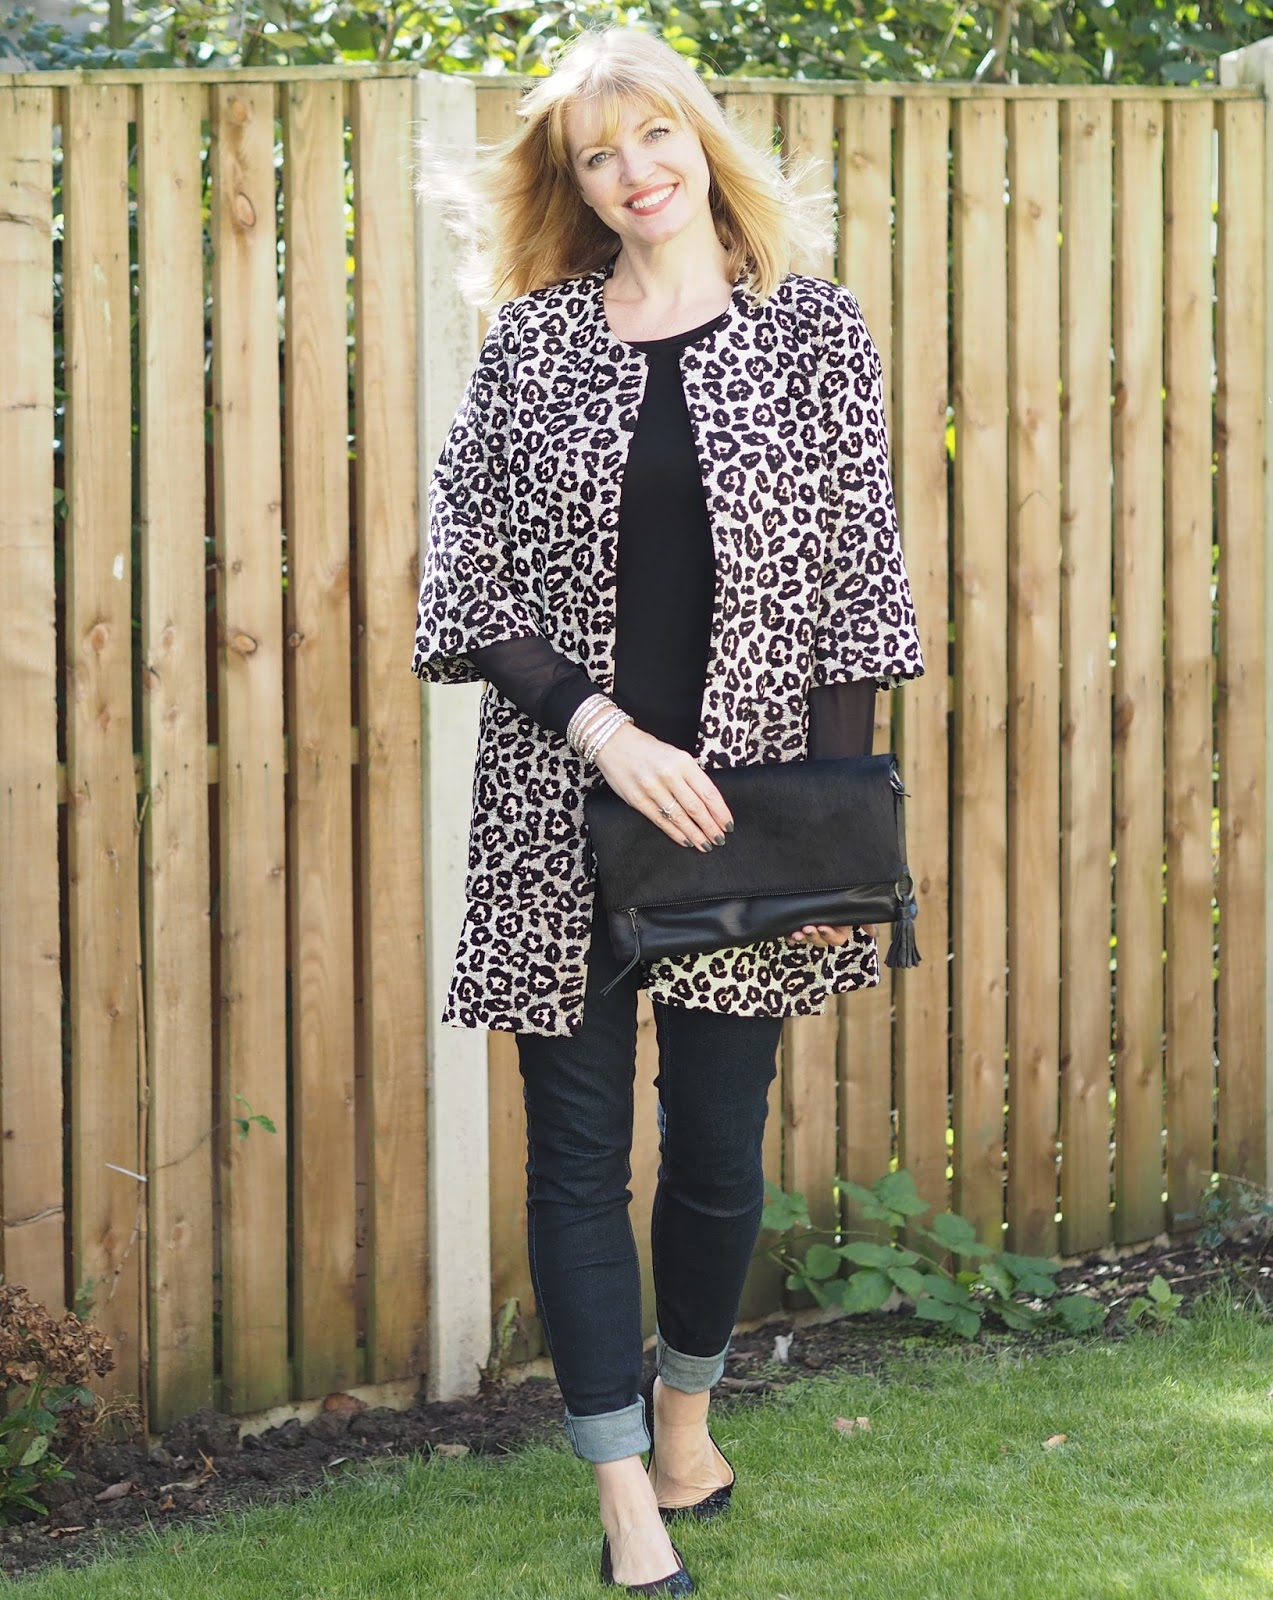 Leopard animal print coat jacket, over 40 style